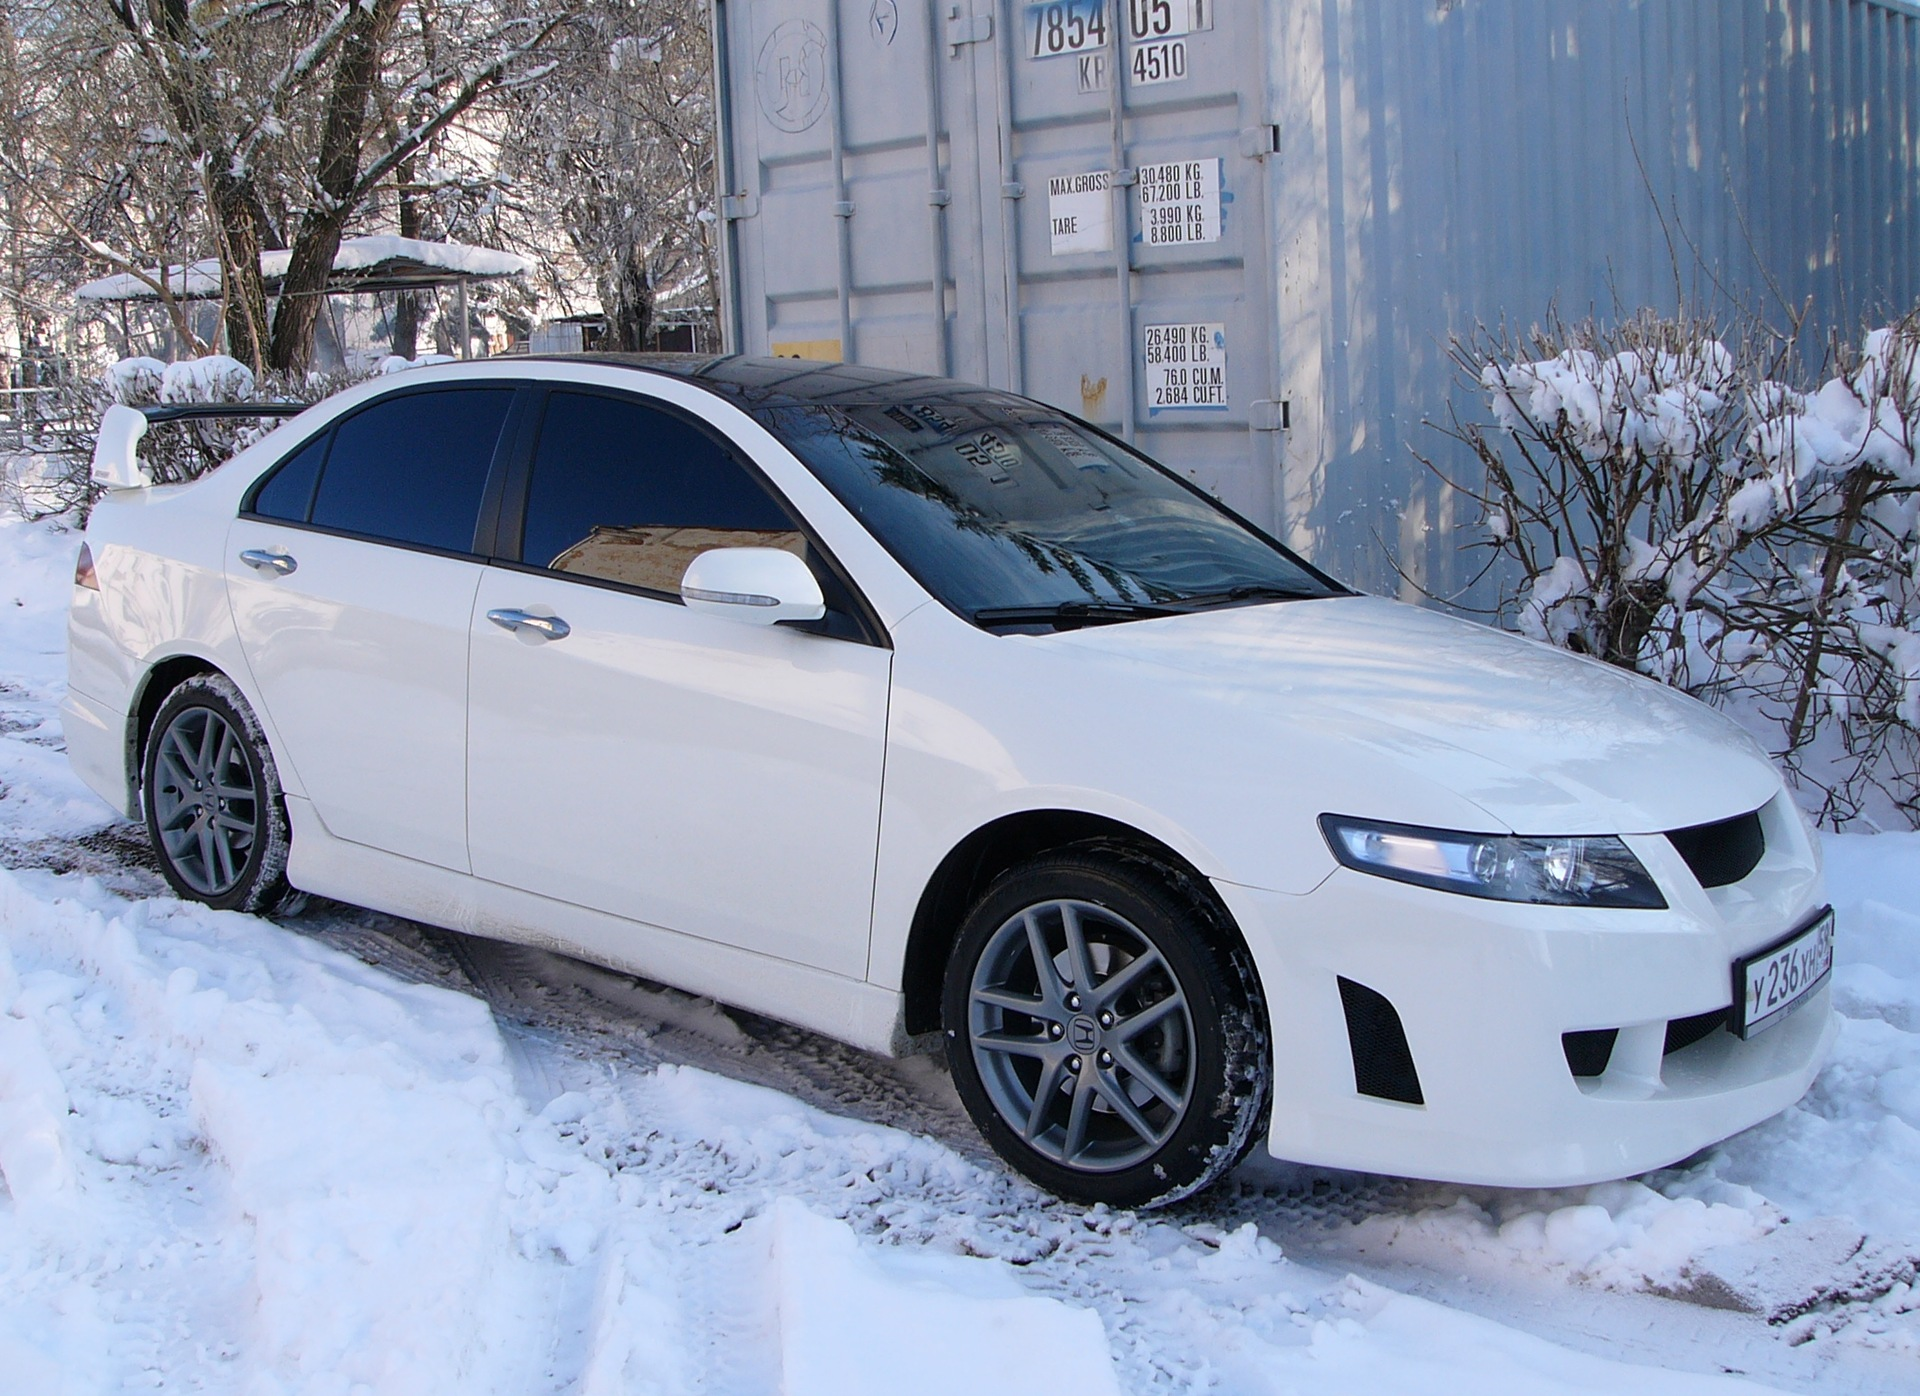 honda accord vii 2002 pictures #10